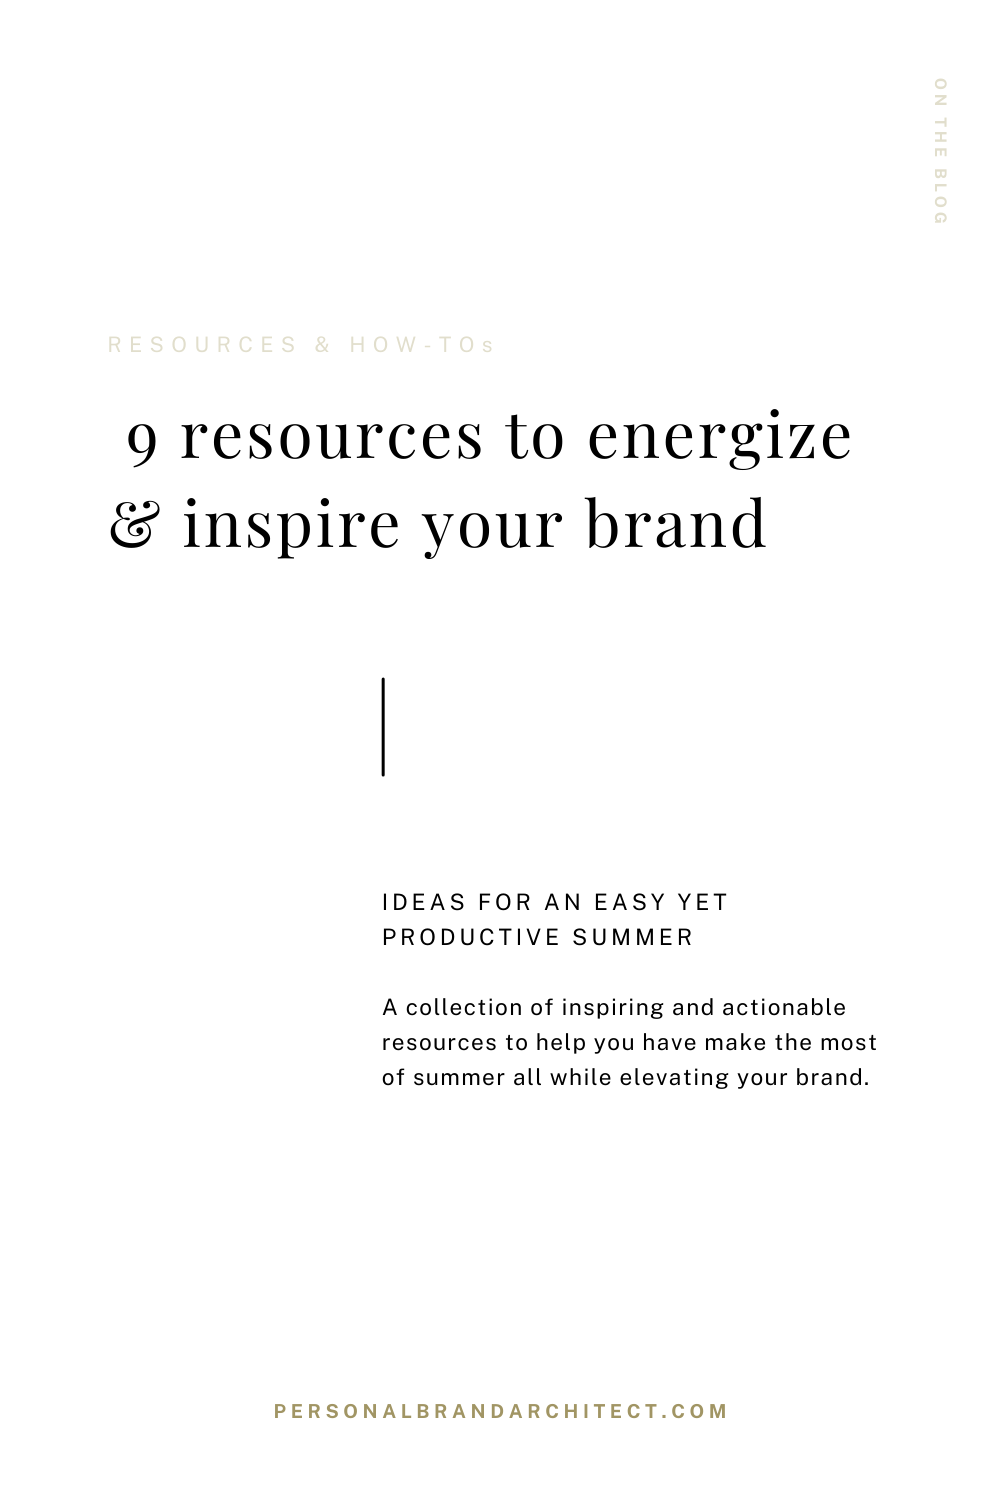 Pinterest Pin - 9 resources to energize & inspire your brand